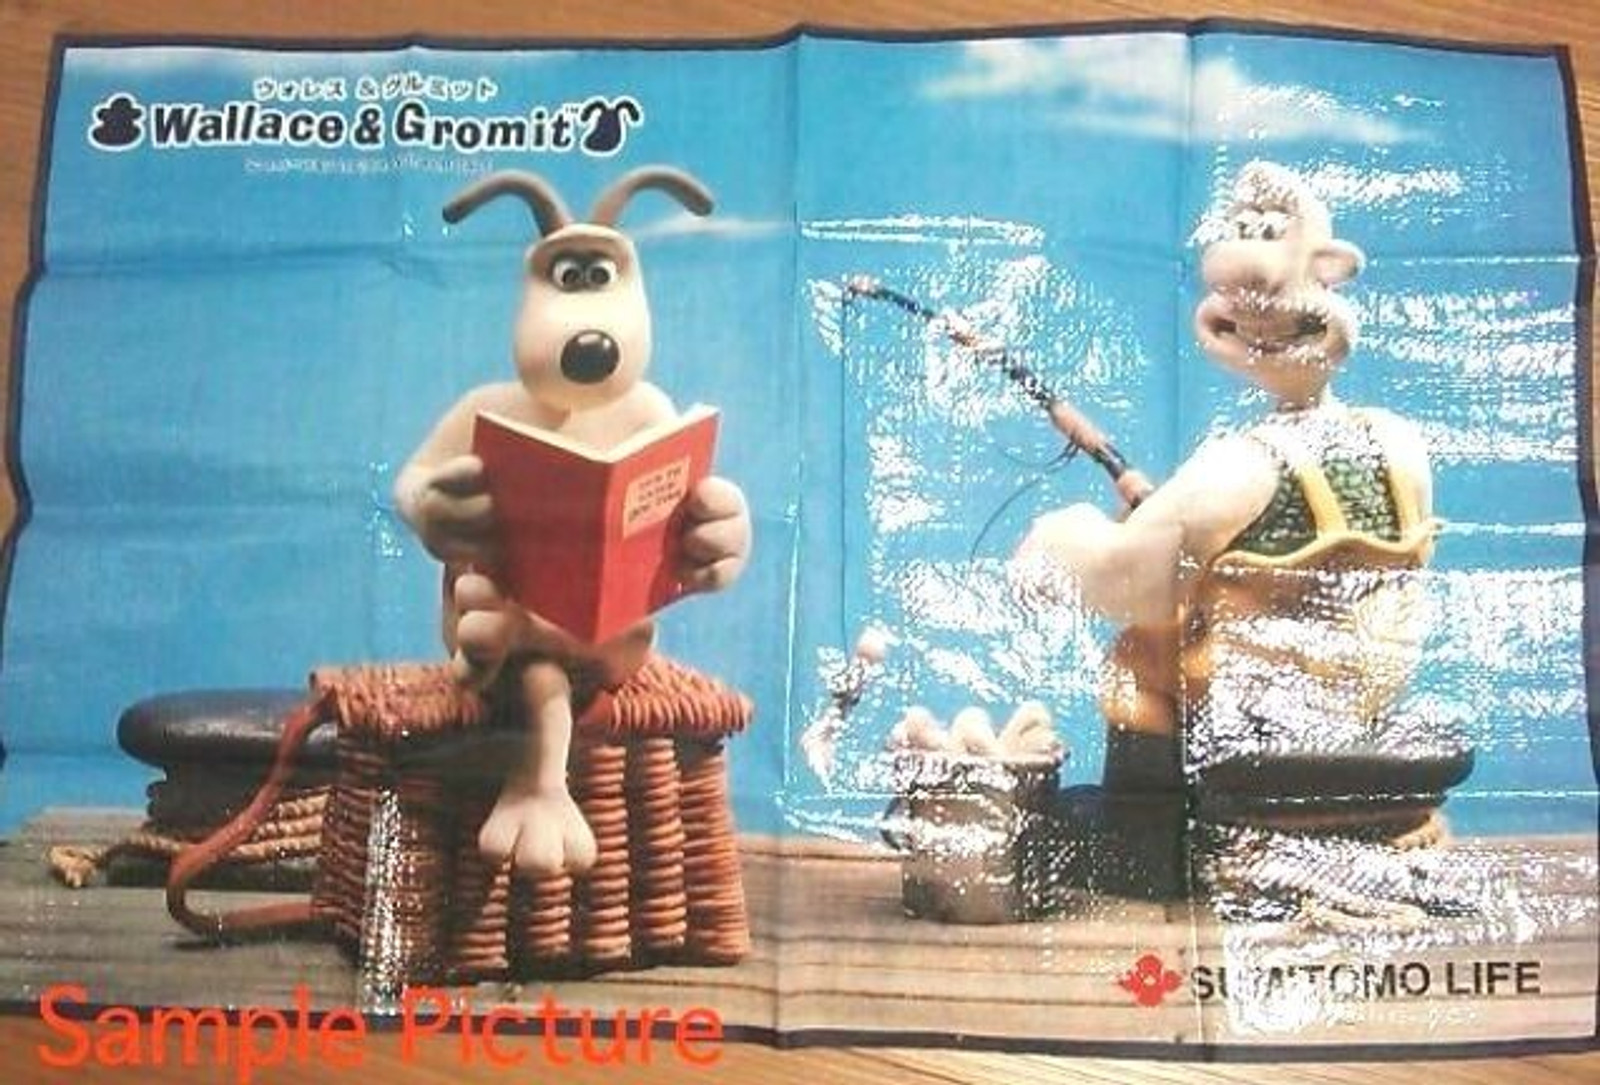 Wallace & Gromit Picnic sheet 24x36inches Sumitomo Life JAPAN Ardman ANIME